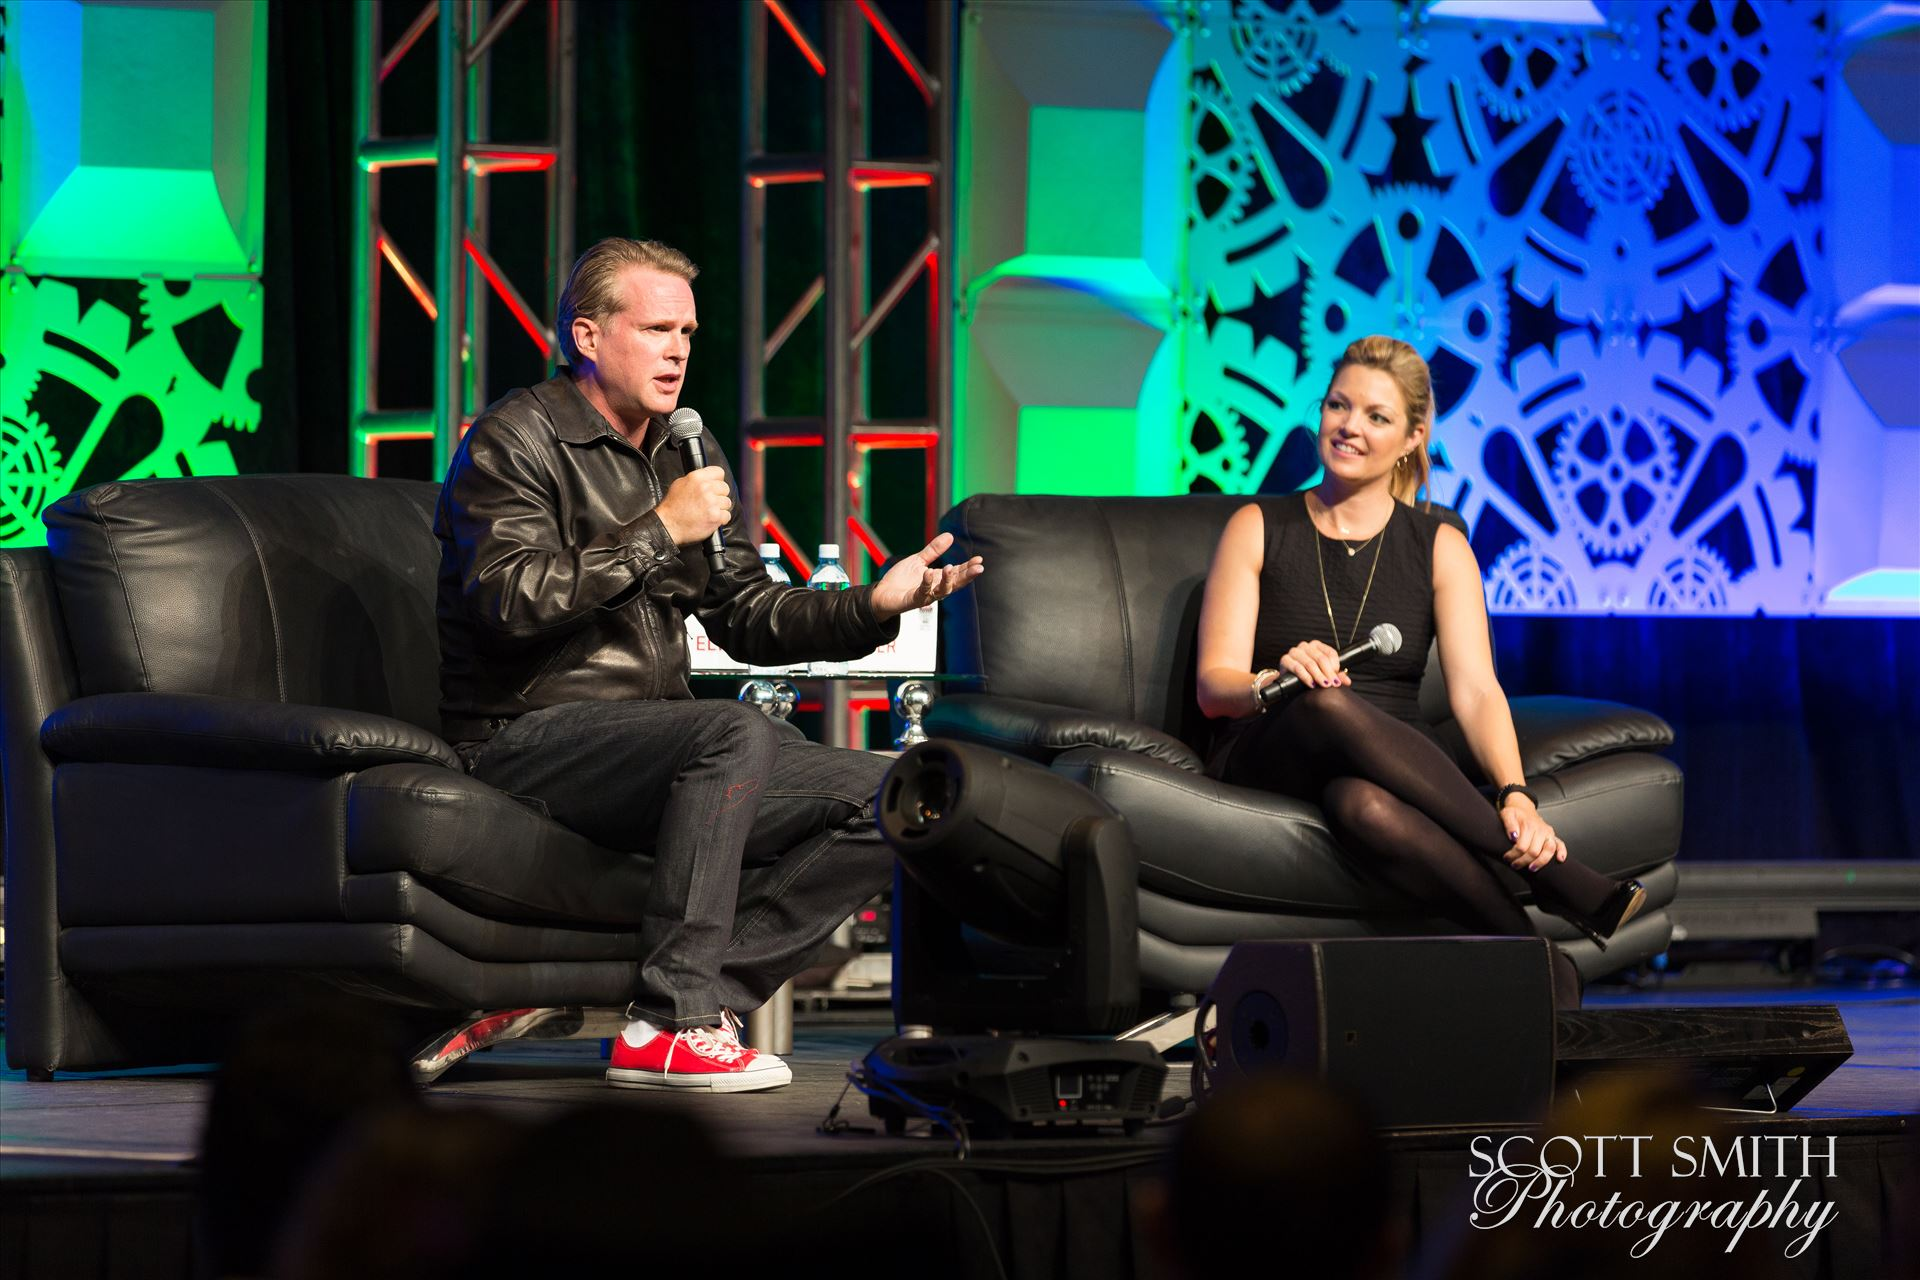 Denver Comic Con 2016 29 - Denver Comic Con 2016 at the Colorado Convention Center. Clare Kramer and Cary Elwes. by Scott Smith Photos